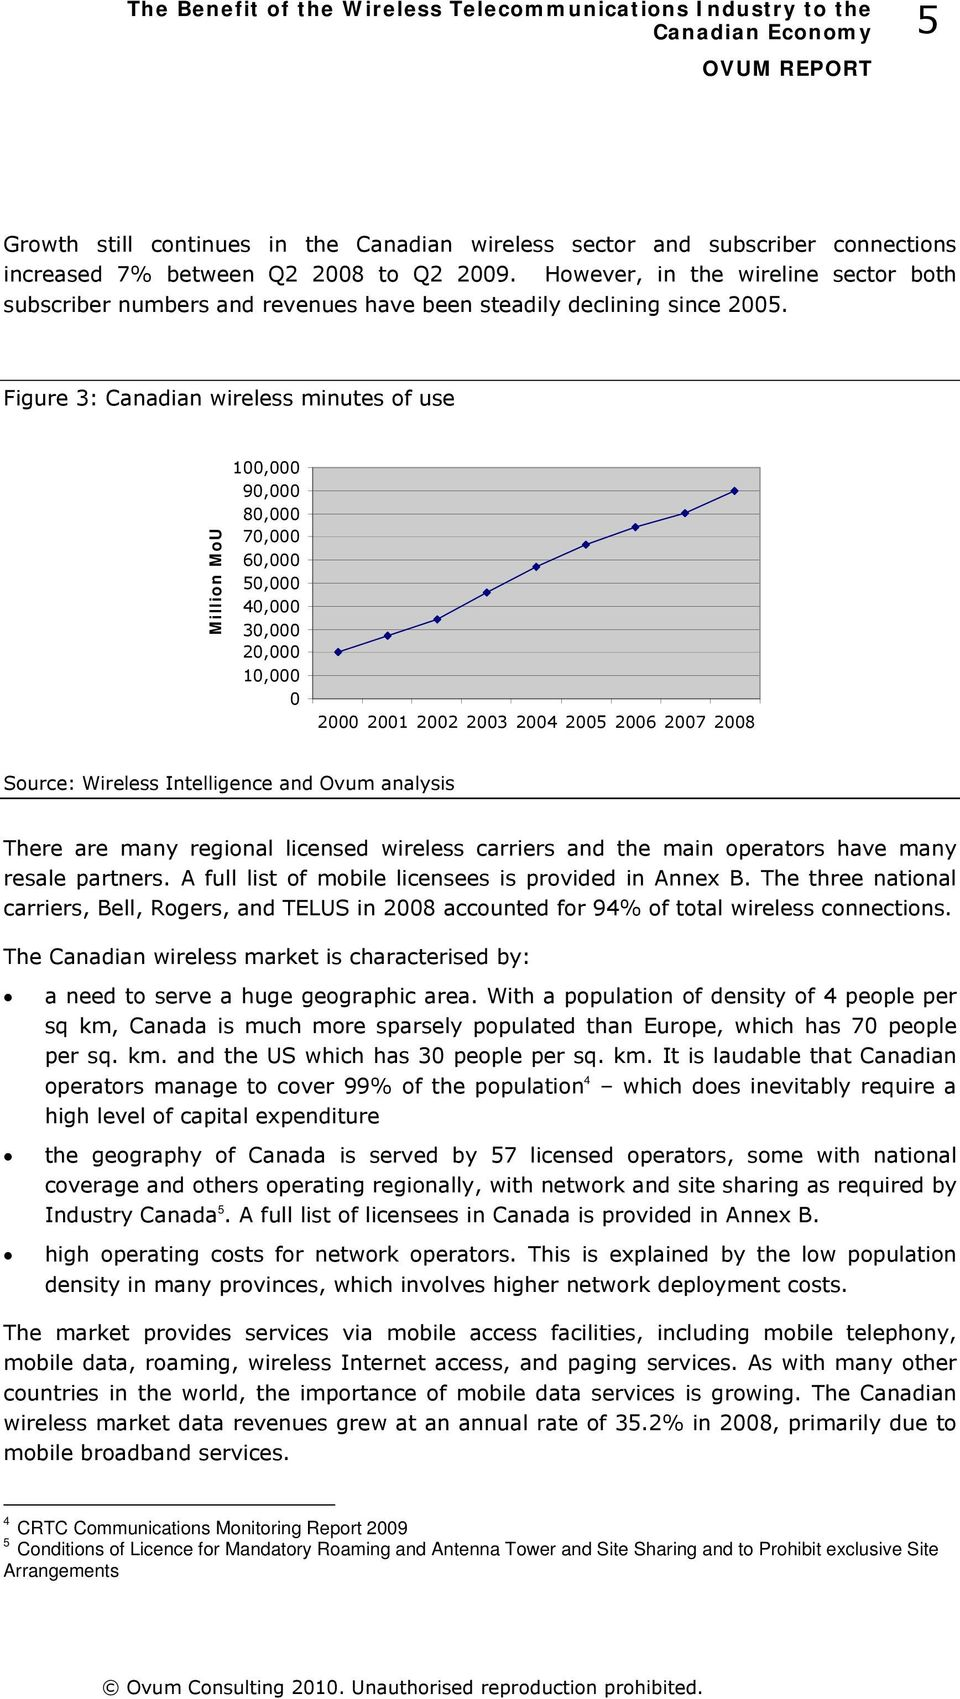 Figure 3: Canadian wireless minutes of use Million MoU 100,000 90,000 80,000 70,000 60,000 50,000 40,000 30,000 20,000 10,000 0 2000 2001 2002 2003 2004 2005 2006 2007 2008 Source: Wireless